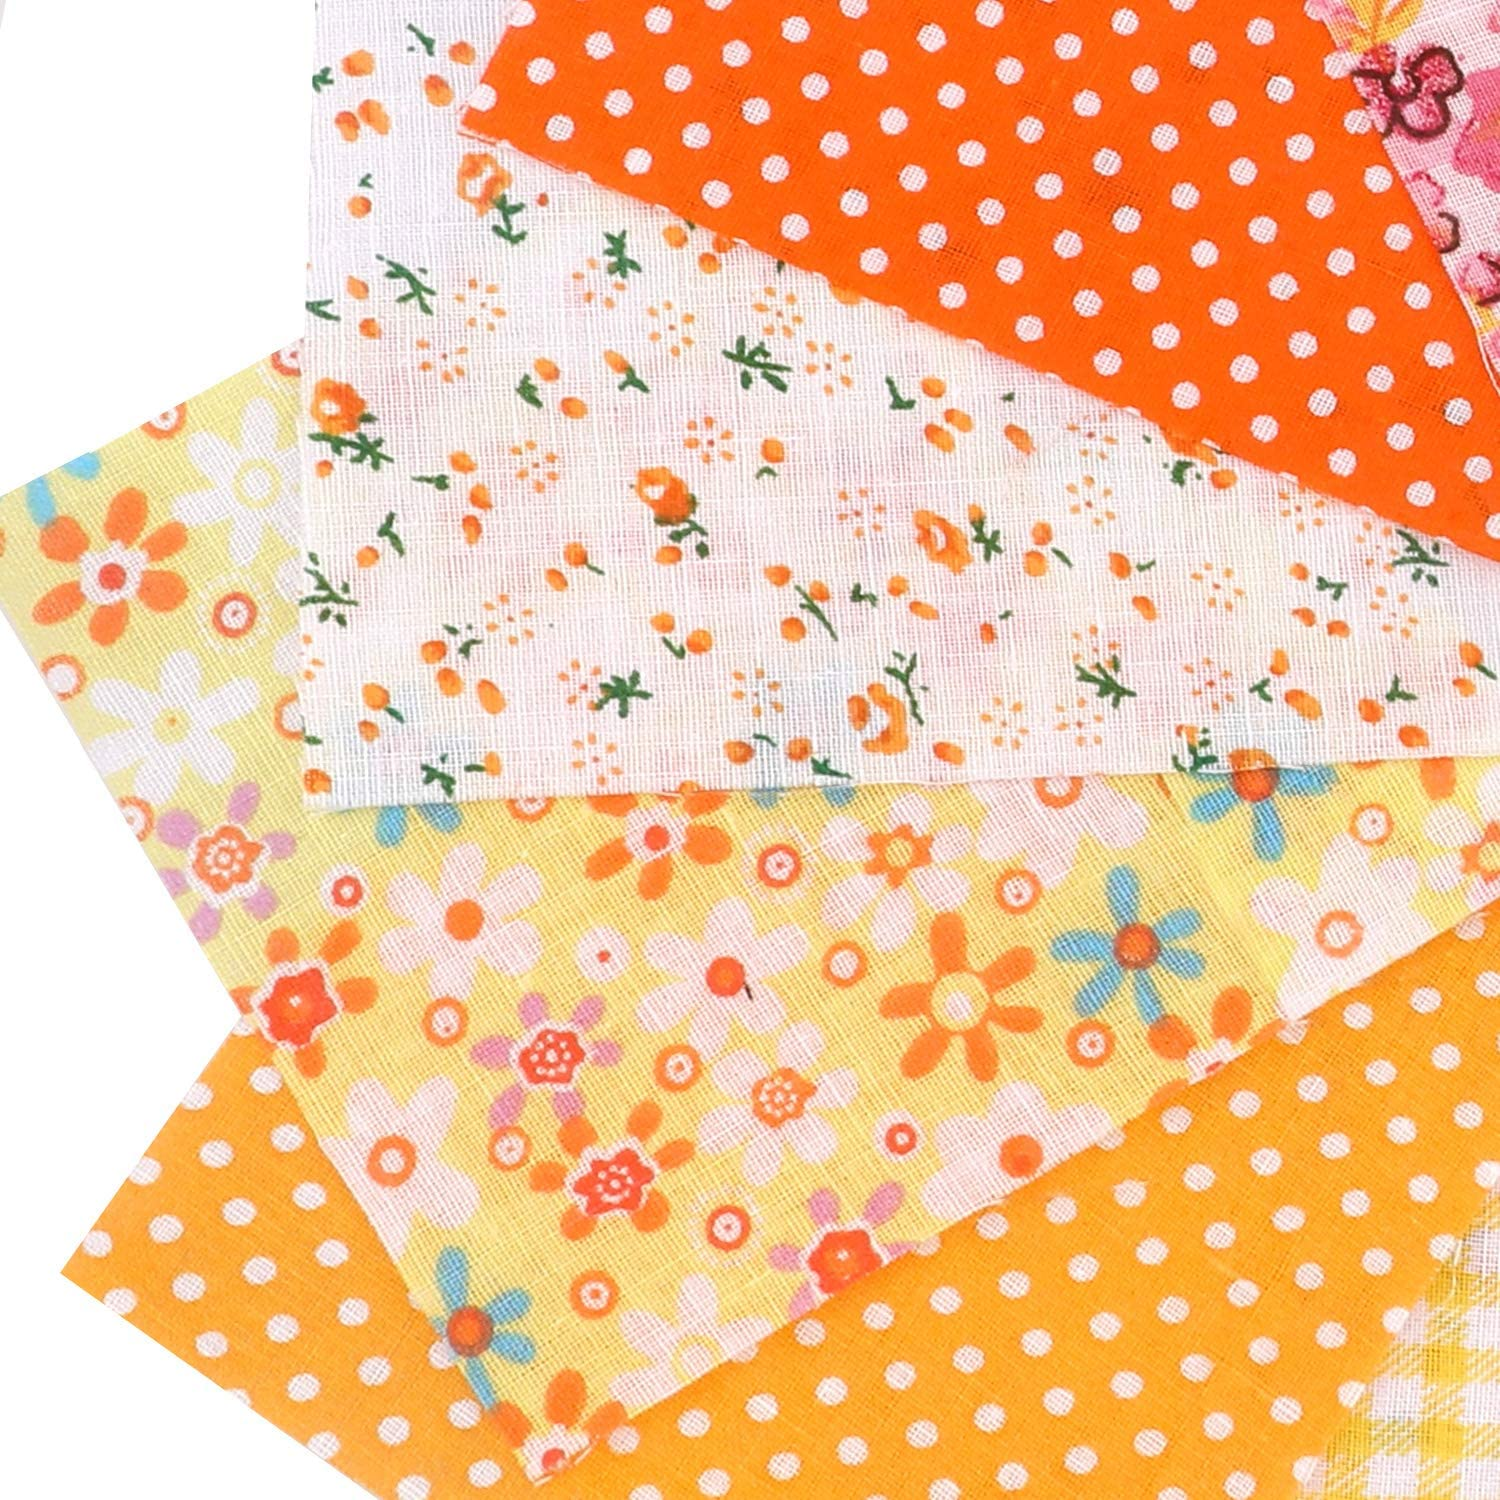 Qpout 100 Pieces Floral Printed Craft Fabric Bundle Patchwork Squares Quilting Sewing Patchwork Craft Sewing